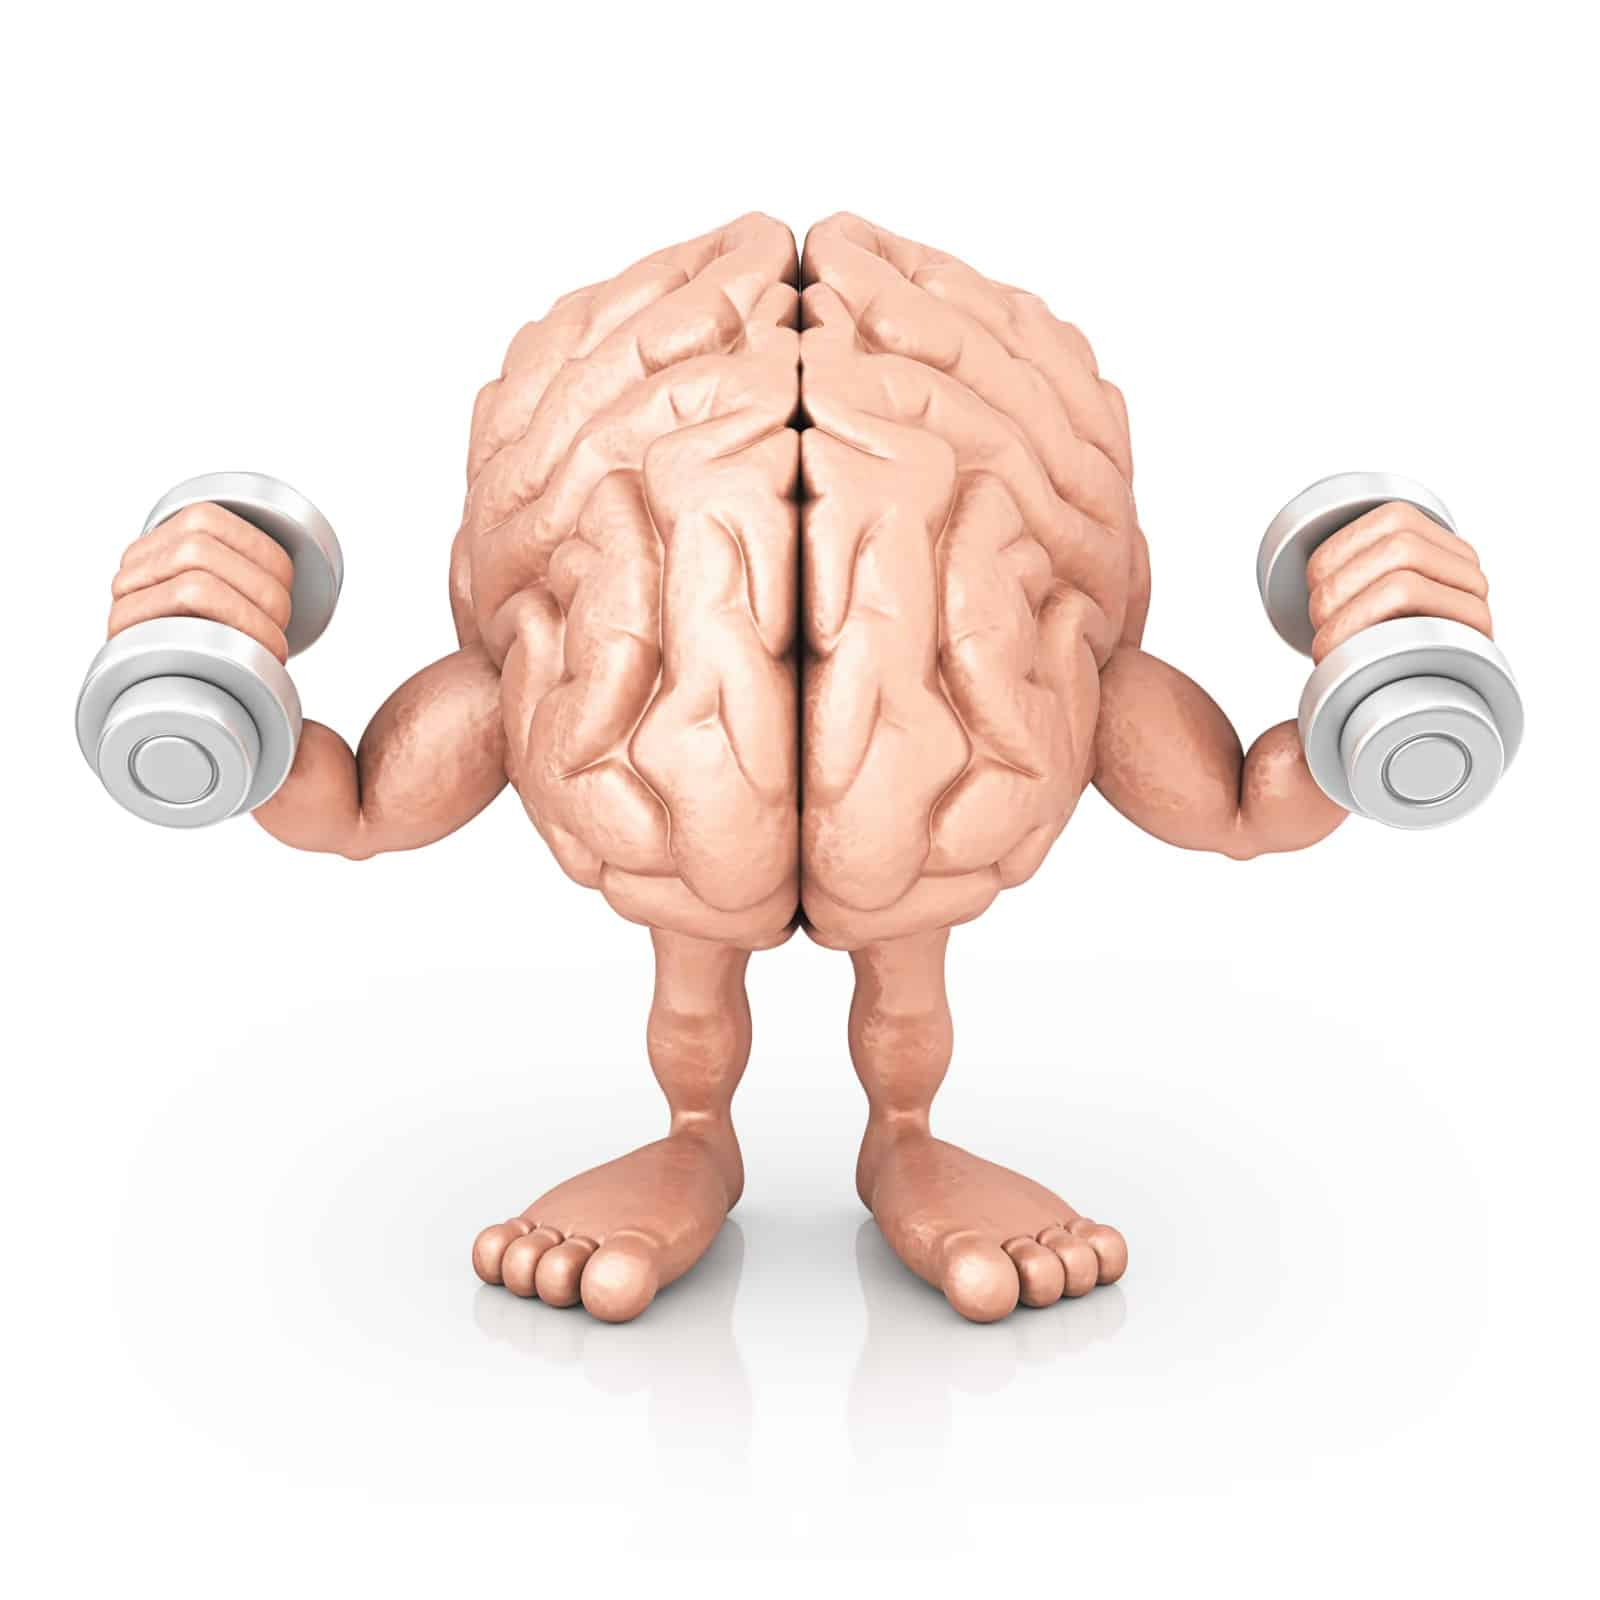 image of a human brain lifting weights